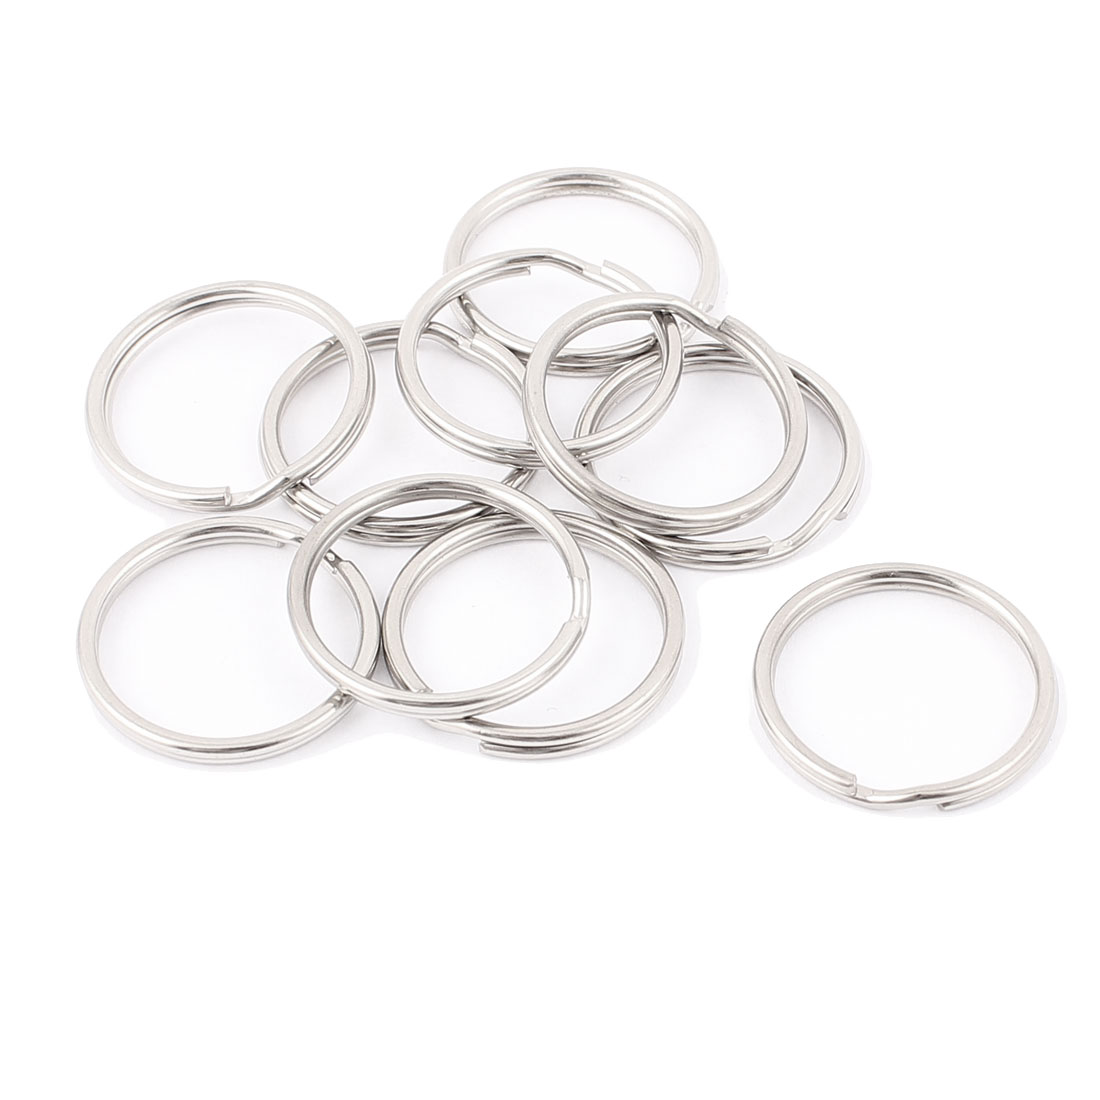 "10 PCS Sliver Tone 1"" Dia Metal Rings Replacement Split Loop Keyring Keys Holder"